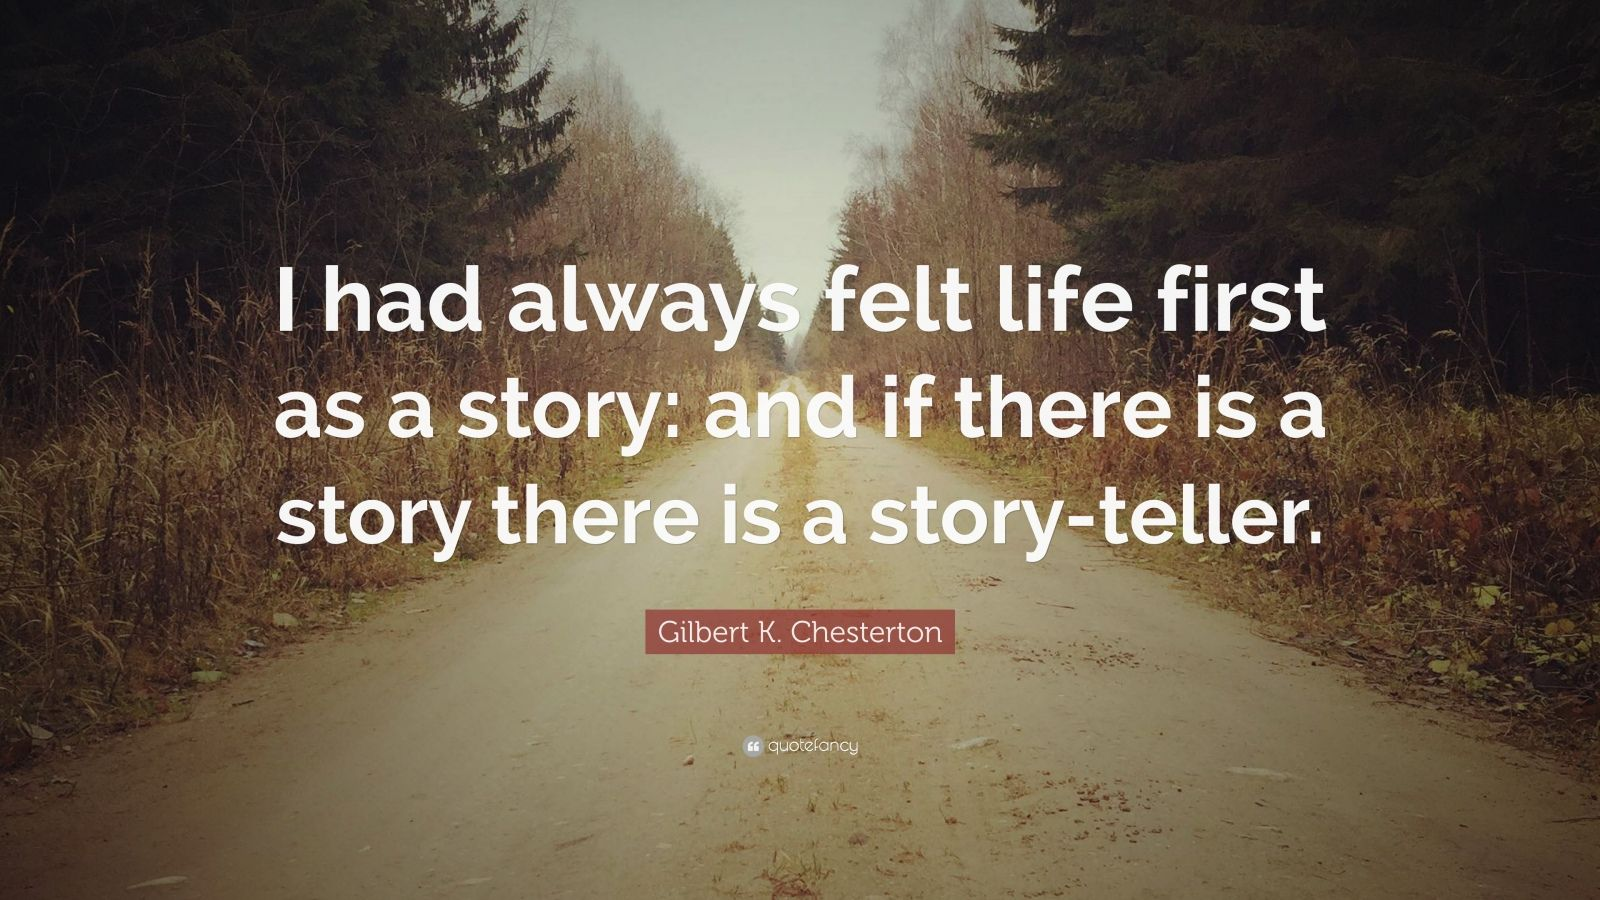 """Gilbert K. Chesterton Quote: """"I had always felt life first as a story: and if there is a story there is a story-teller."""""""